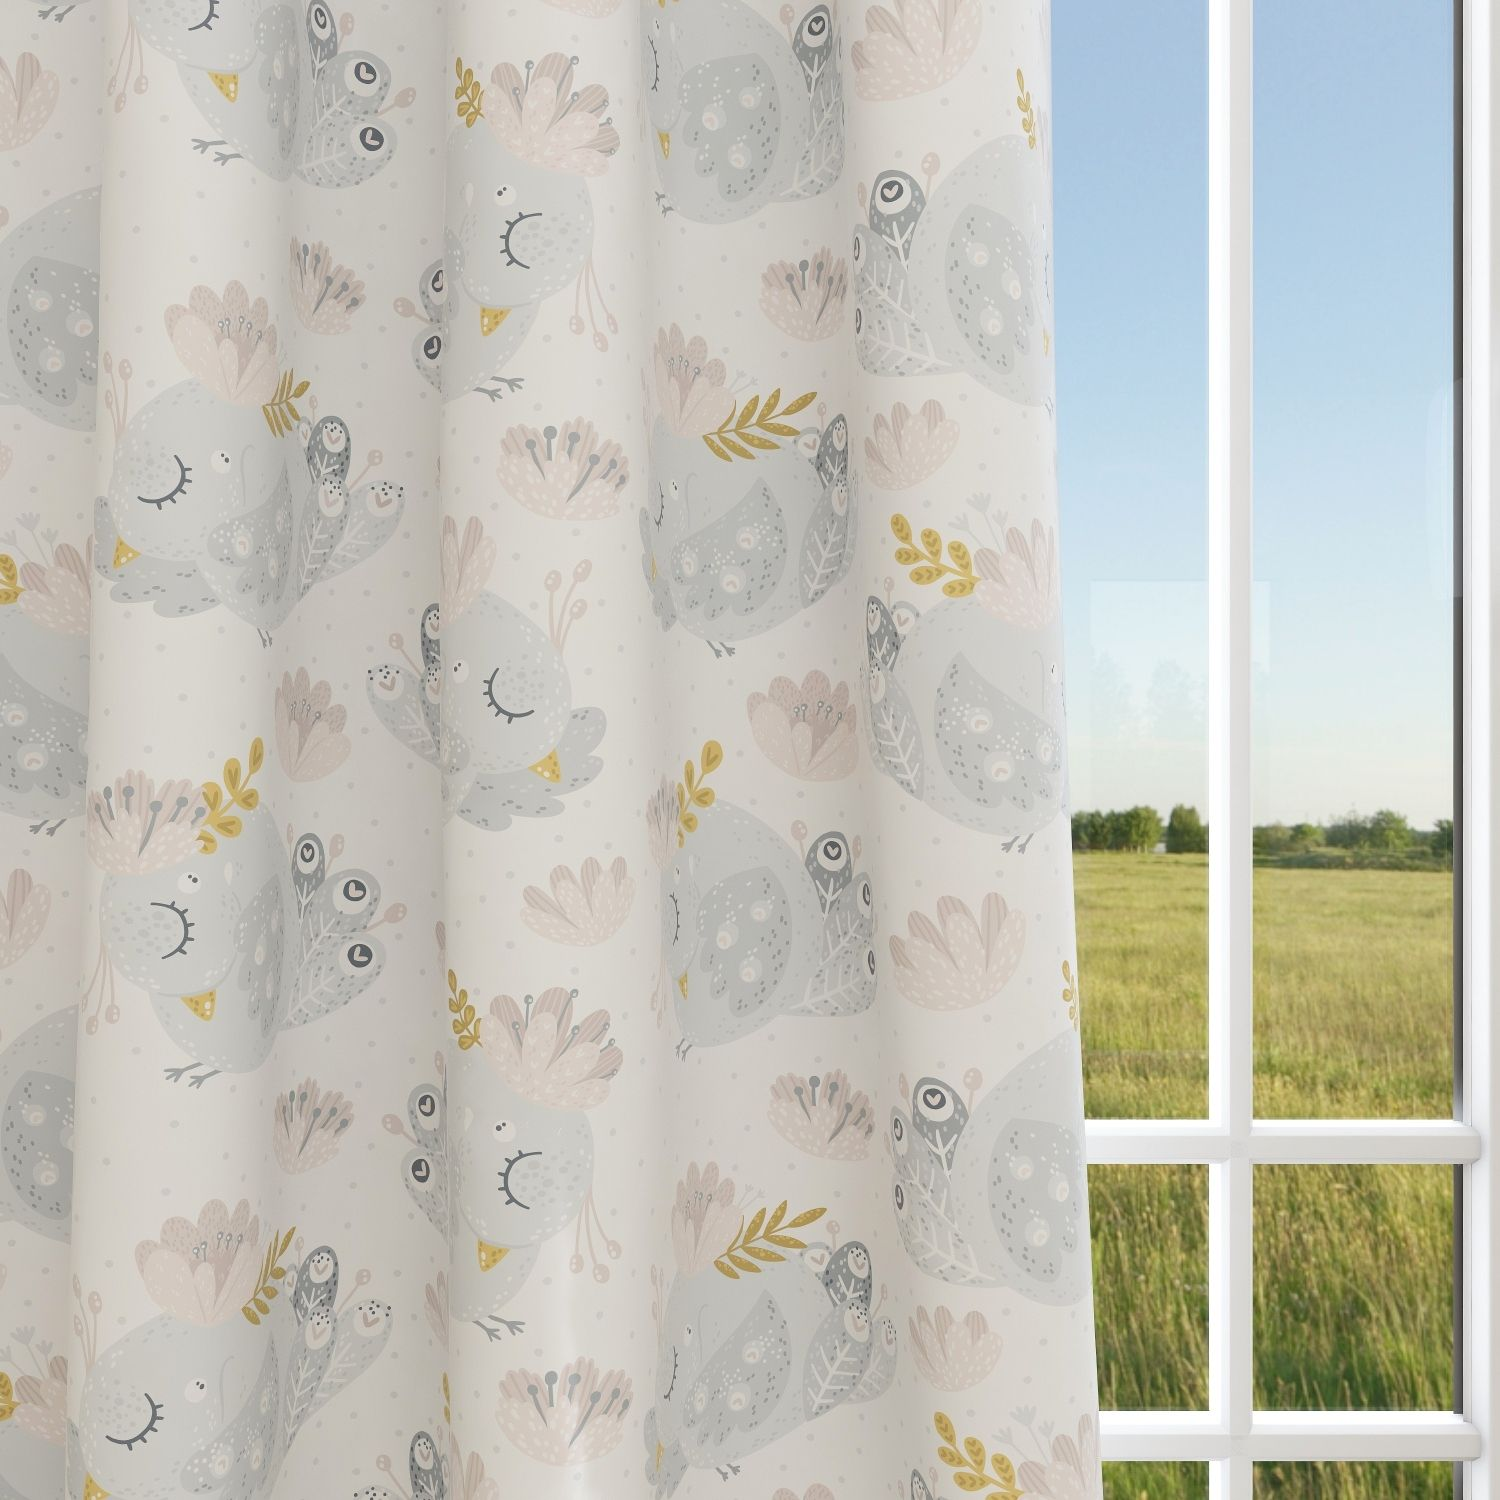 Birds Kids & Nursery Blackout Curtains - Quirky Pheasants